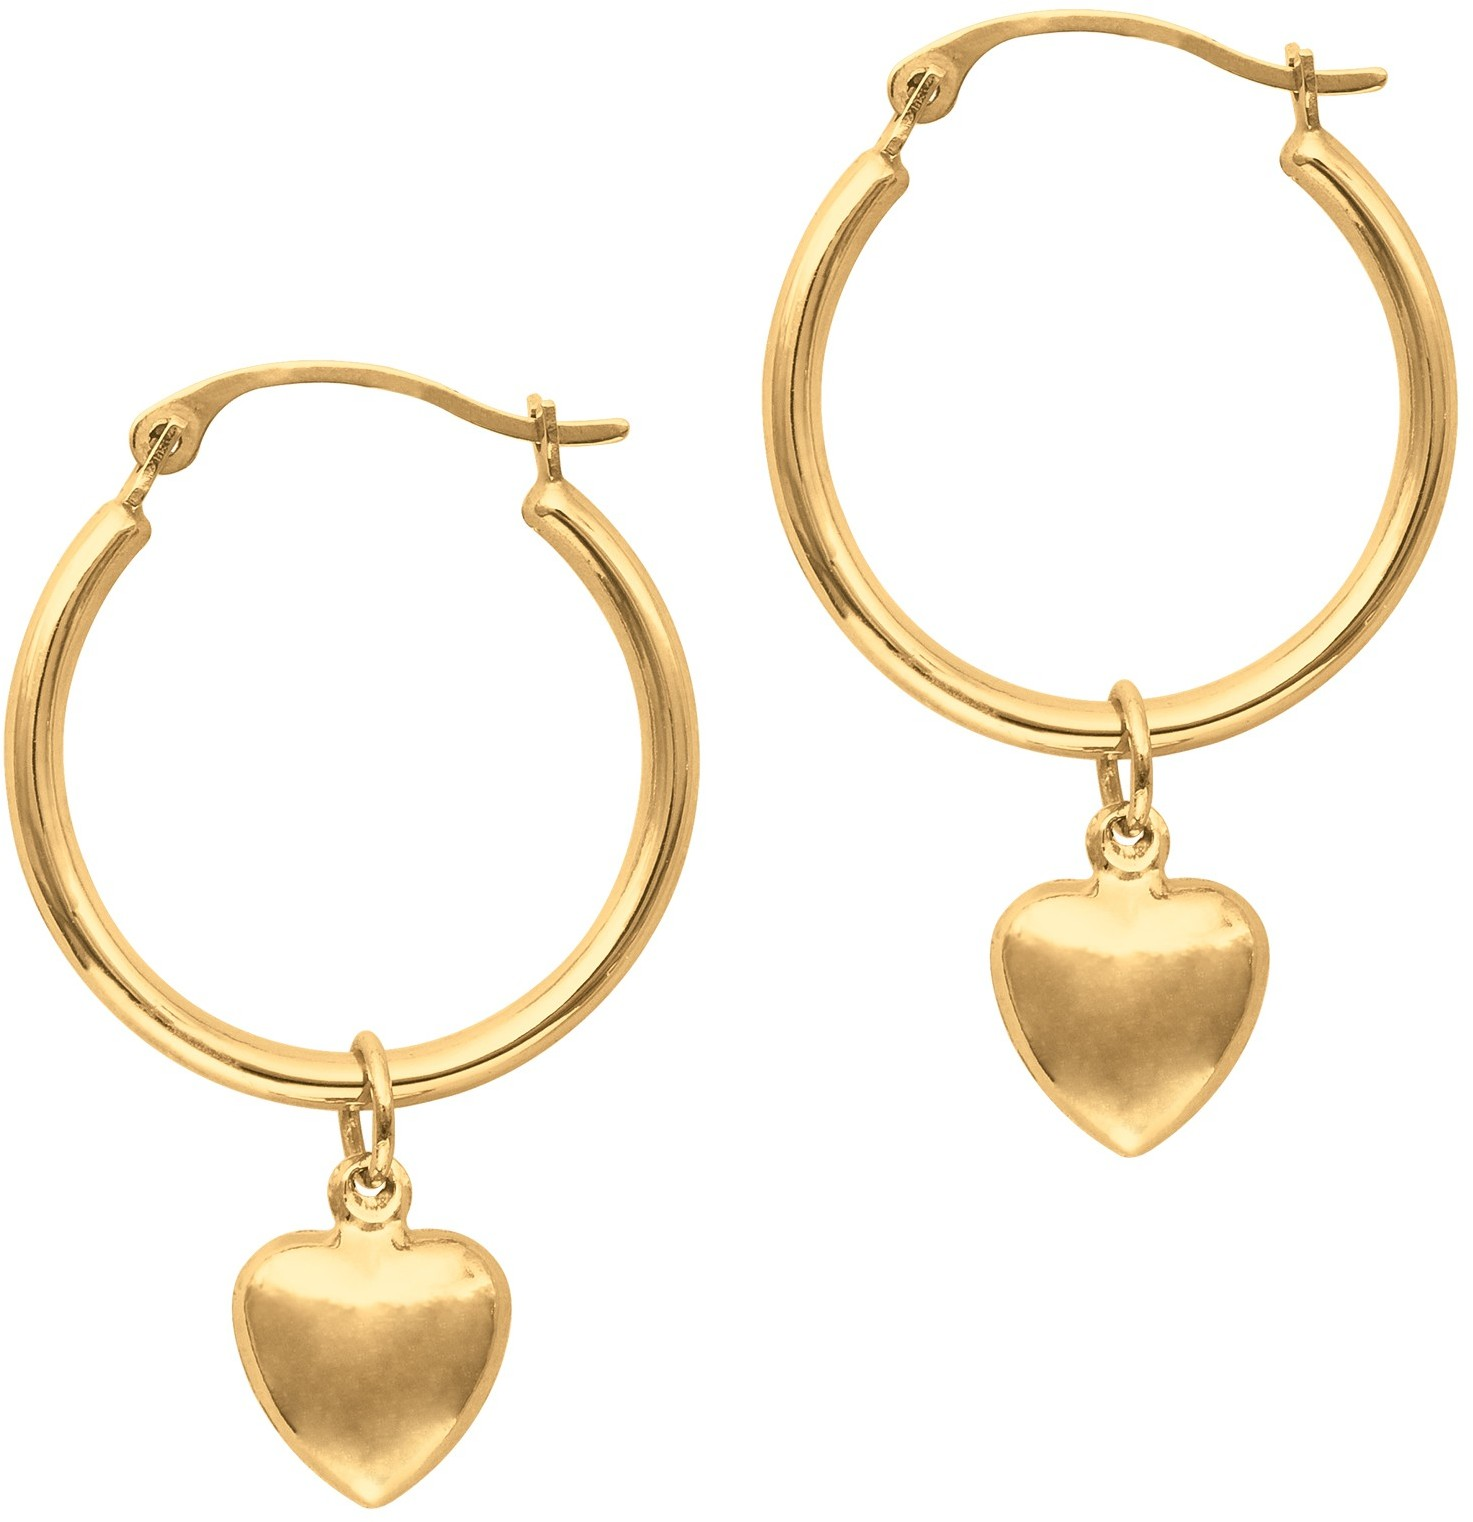 14K Yellow Gold Polished Round Hoop Earrings w/ Puff Heart